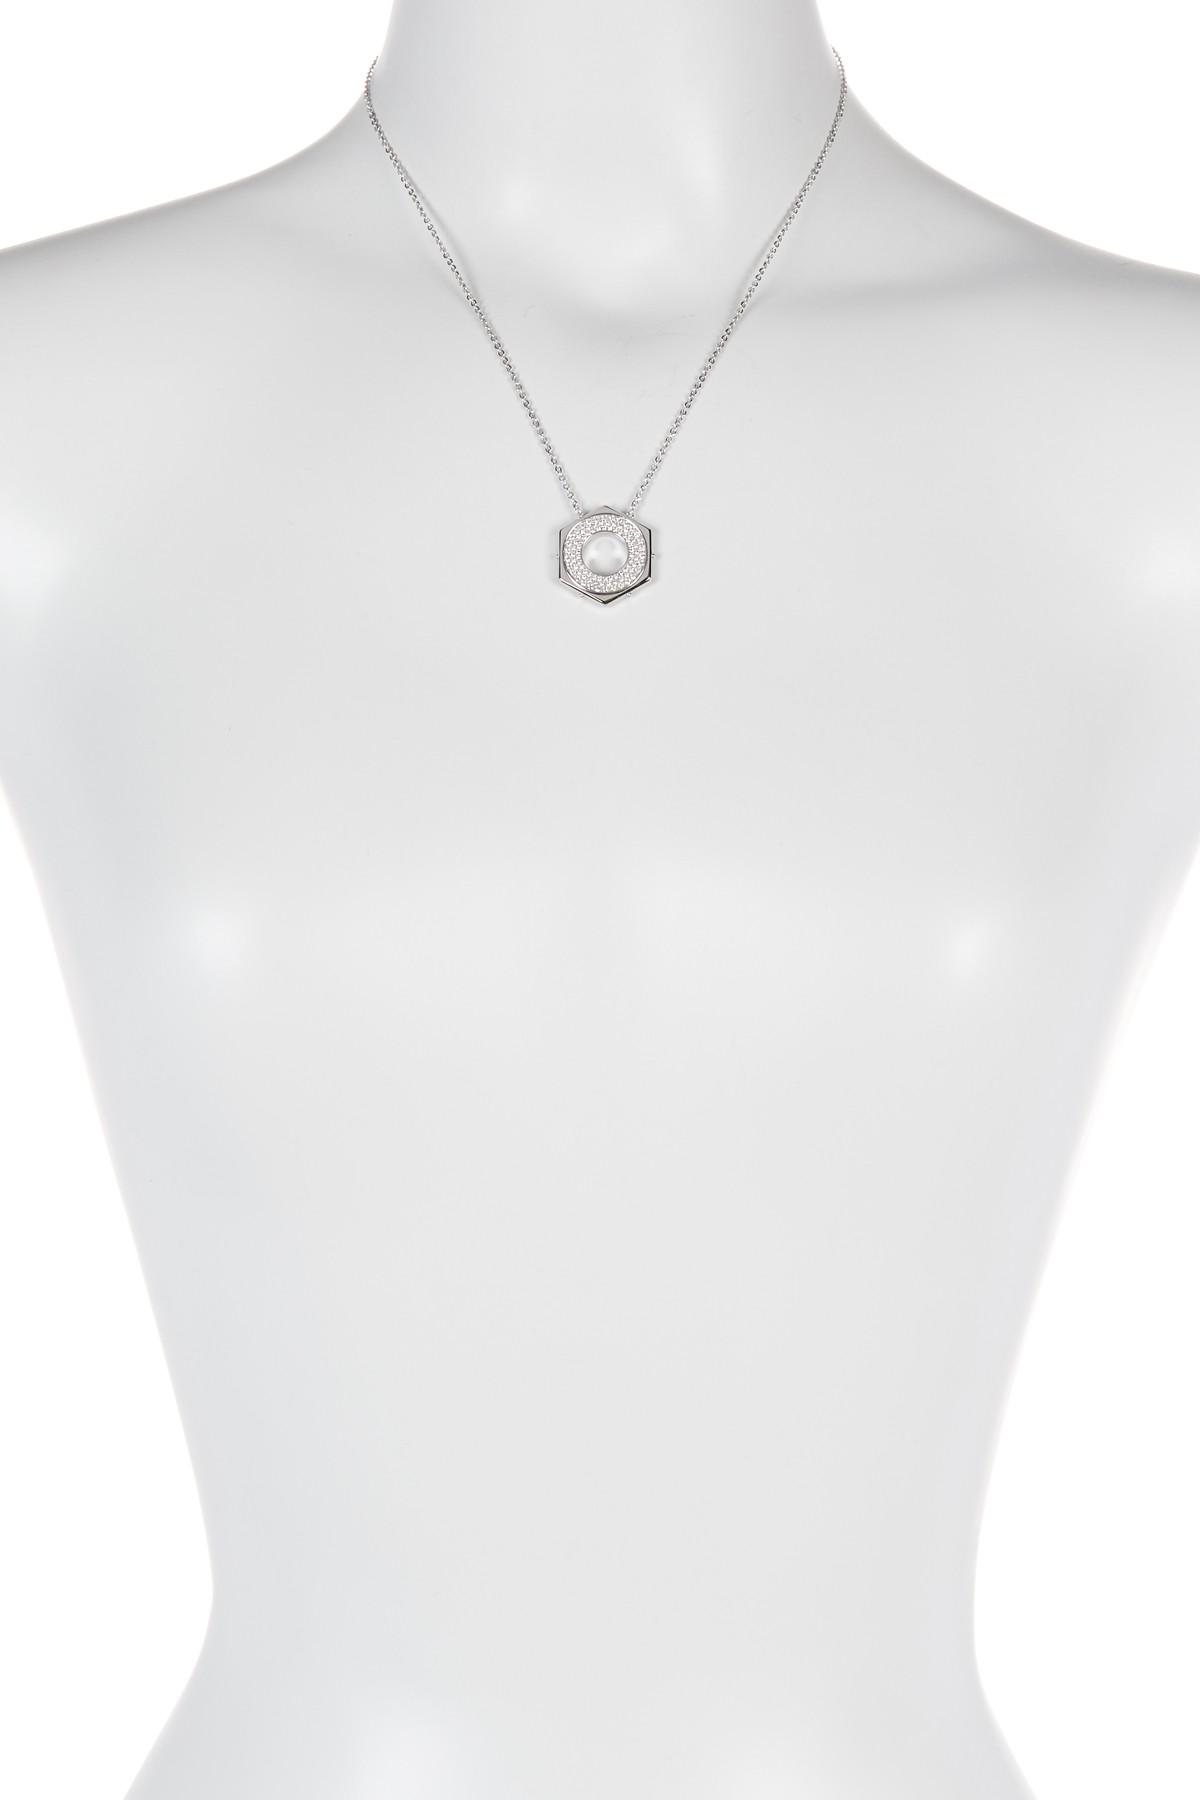 578ad7a90 Gallery. Previously sold at: Nordstrom Rack · Women's Swarovski Crystal  Necklace